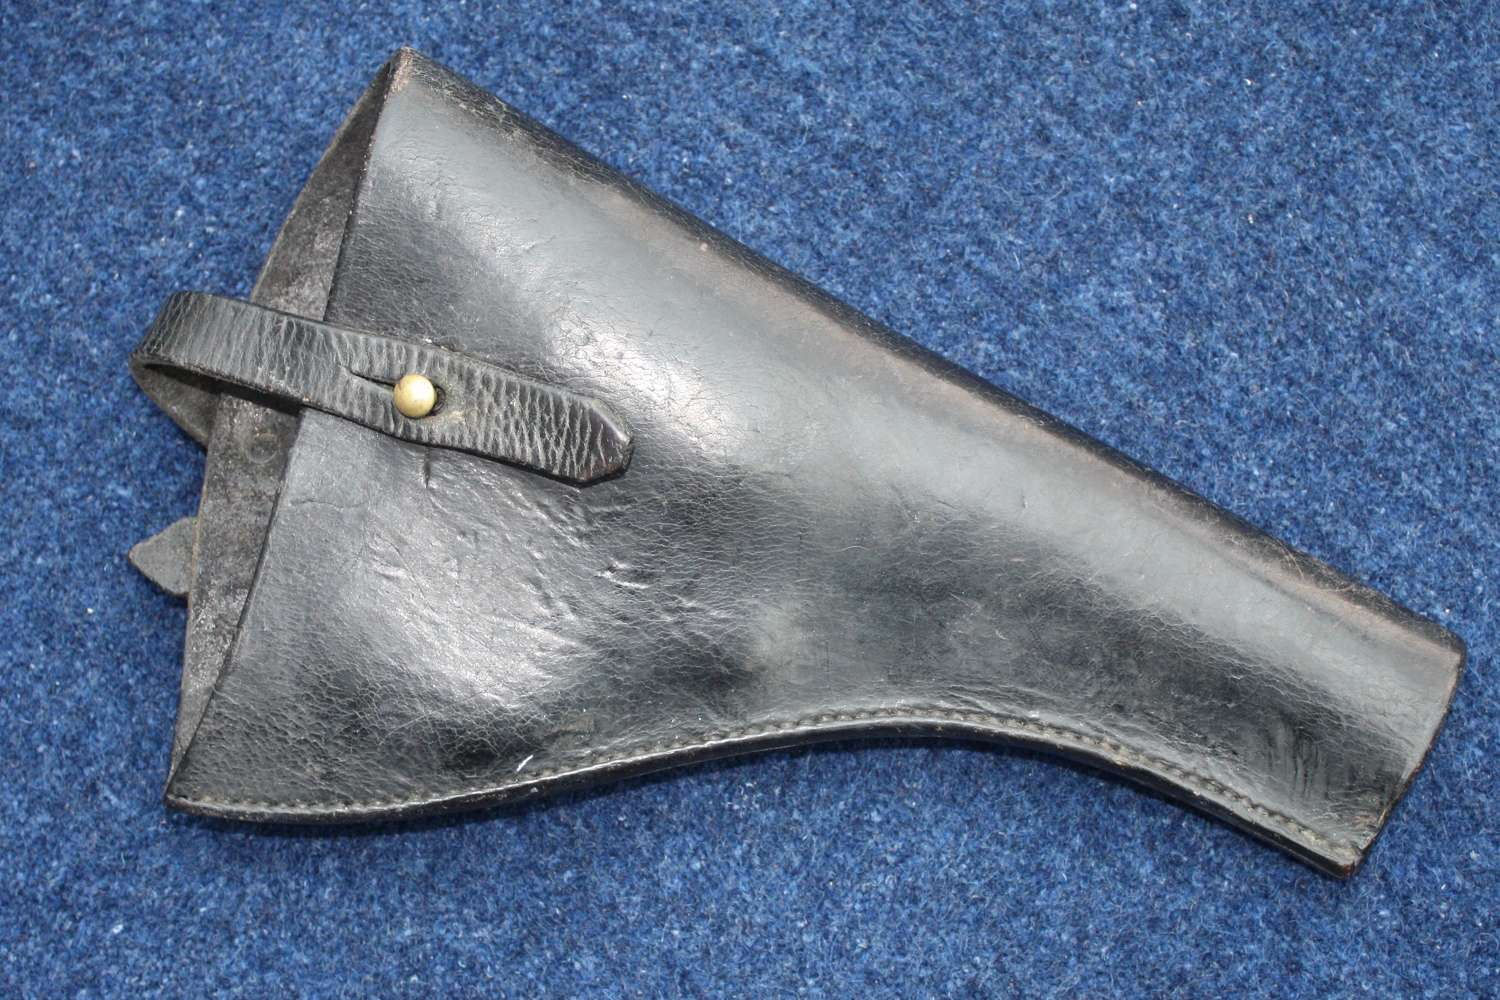 WW1 1914 PATTERN BRITISH WEBLEY LEATHER PISTOL HOLSTER DATED 1915